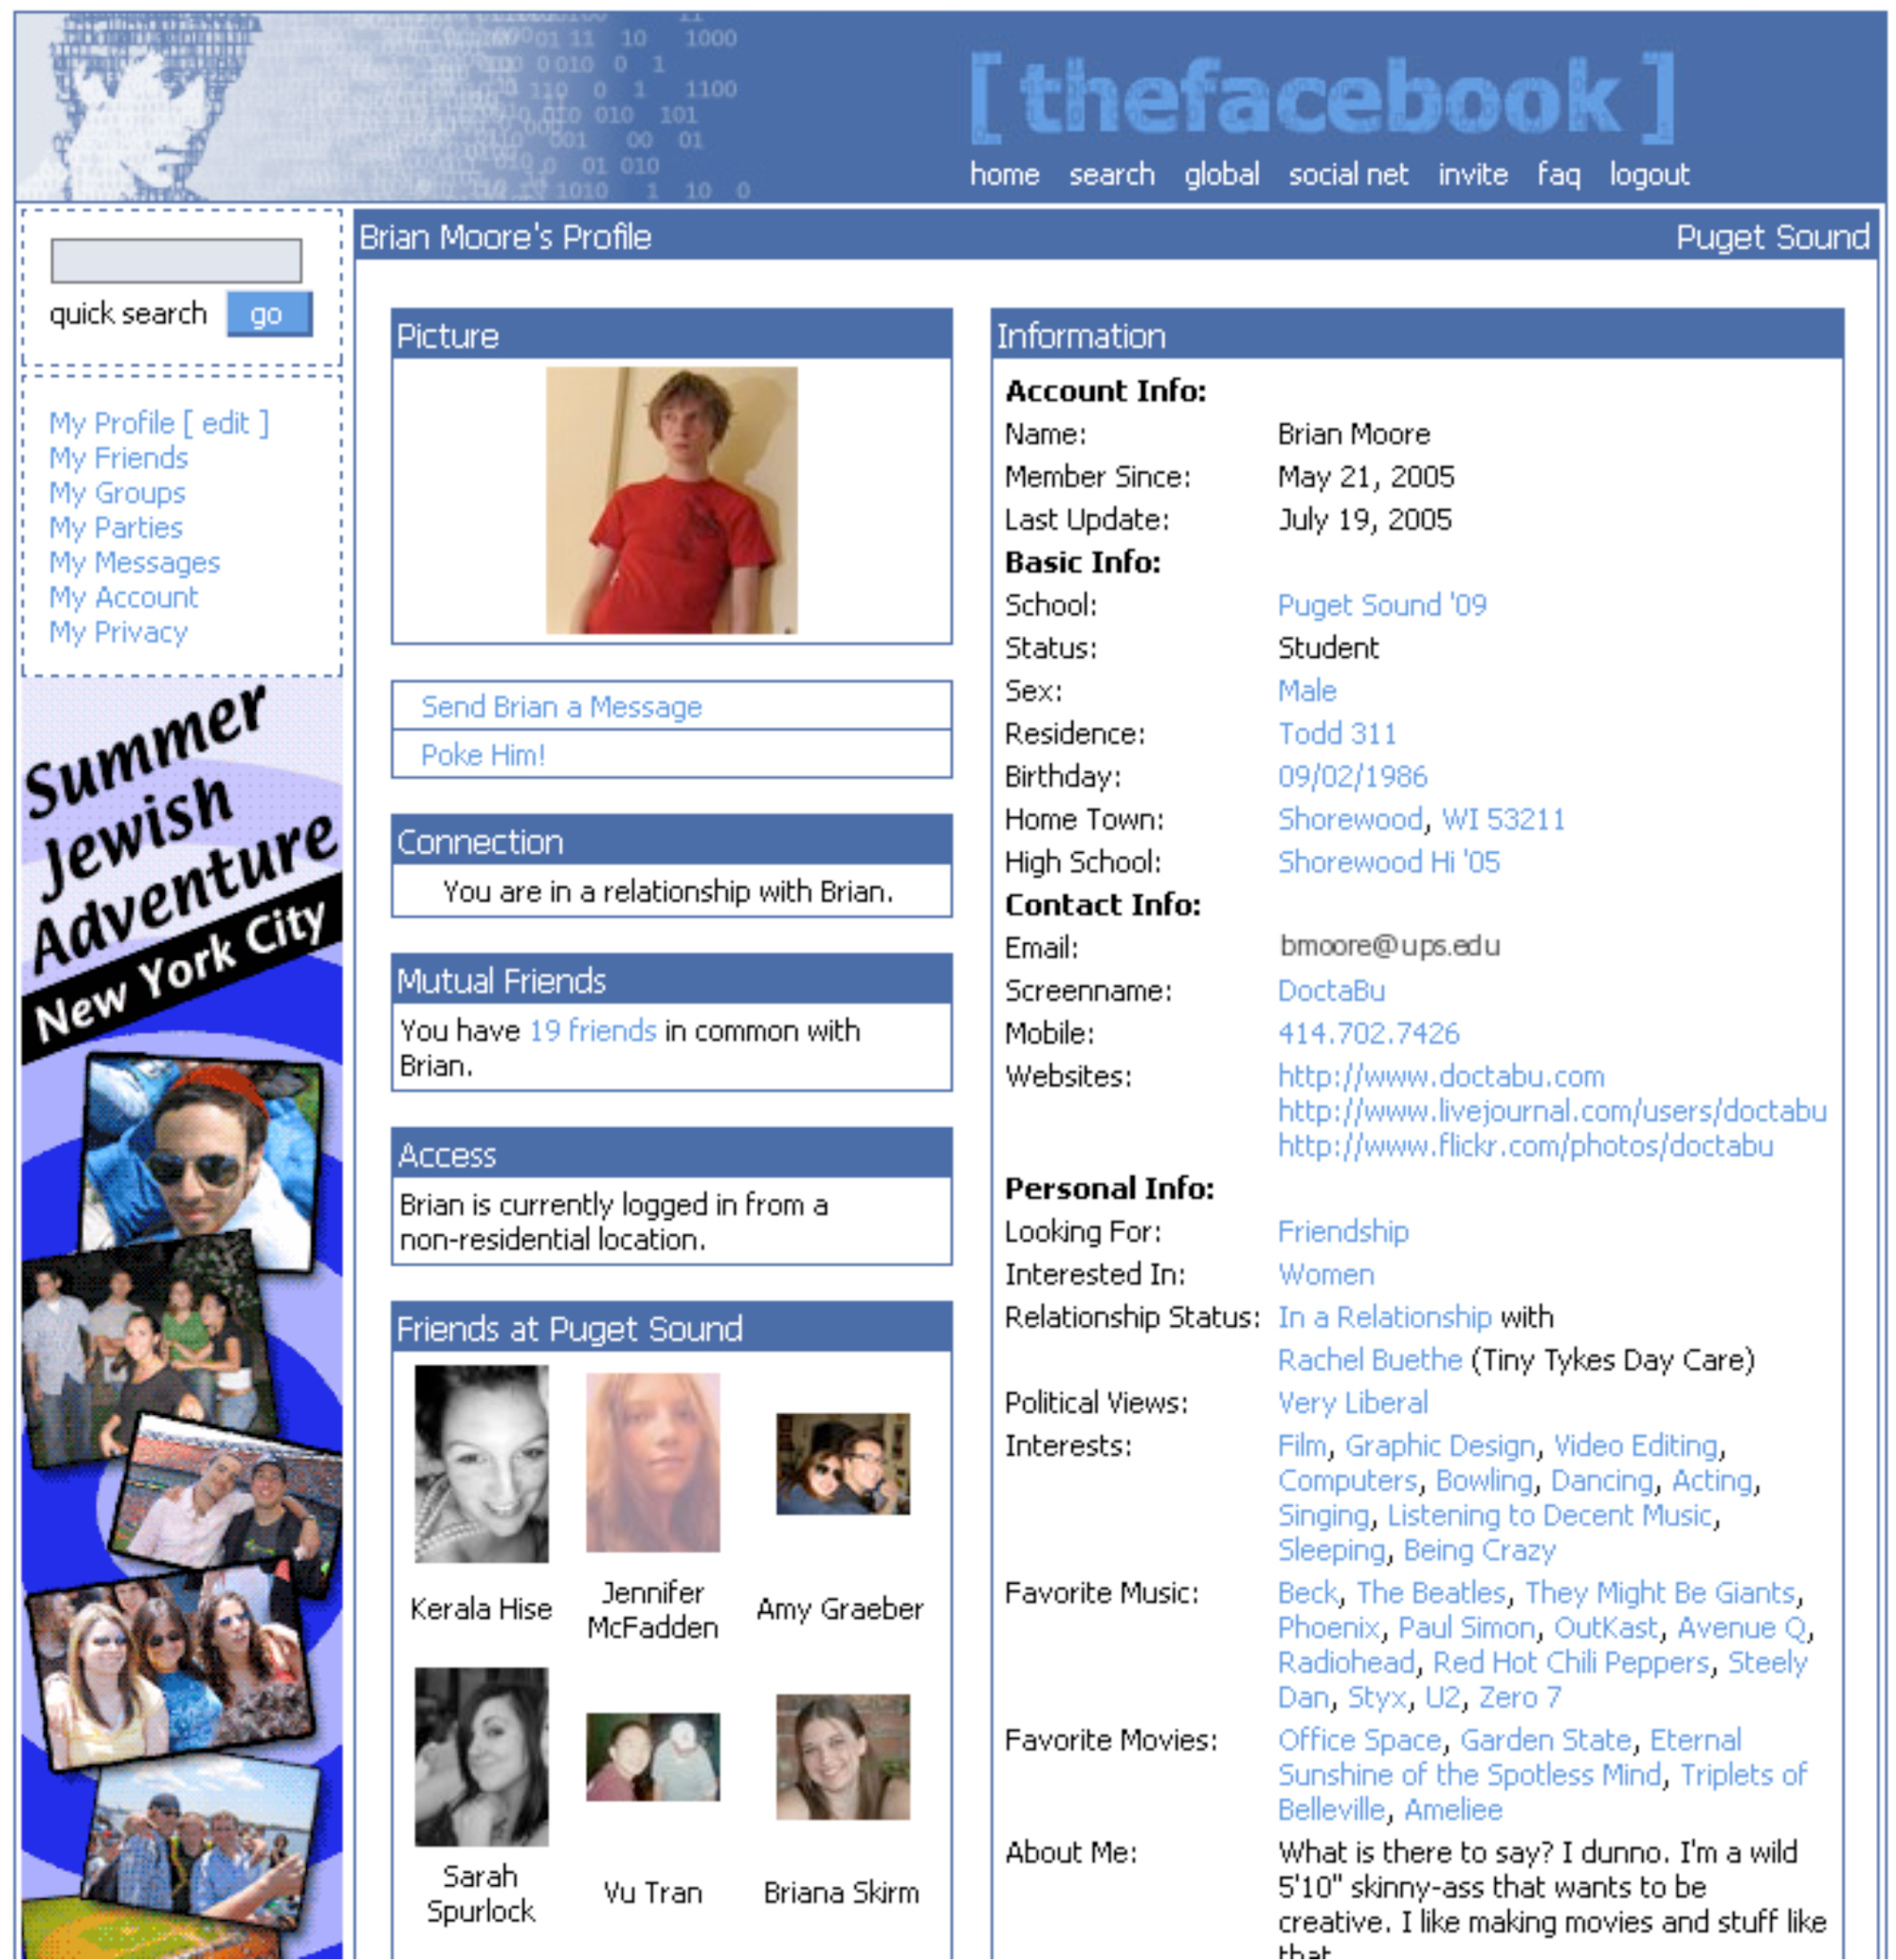 Facebook Profile Page, 2005. Back when Facebook looked a little bit like MySpace.